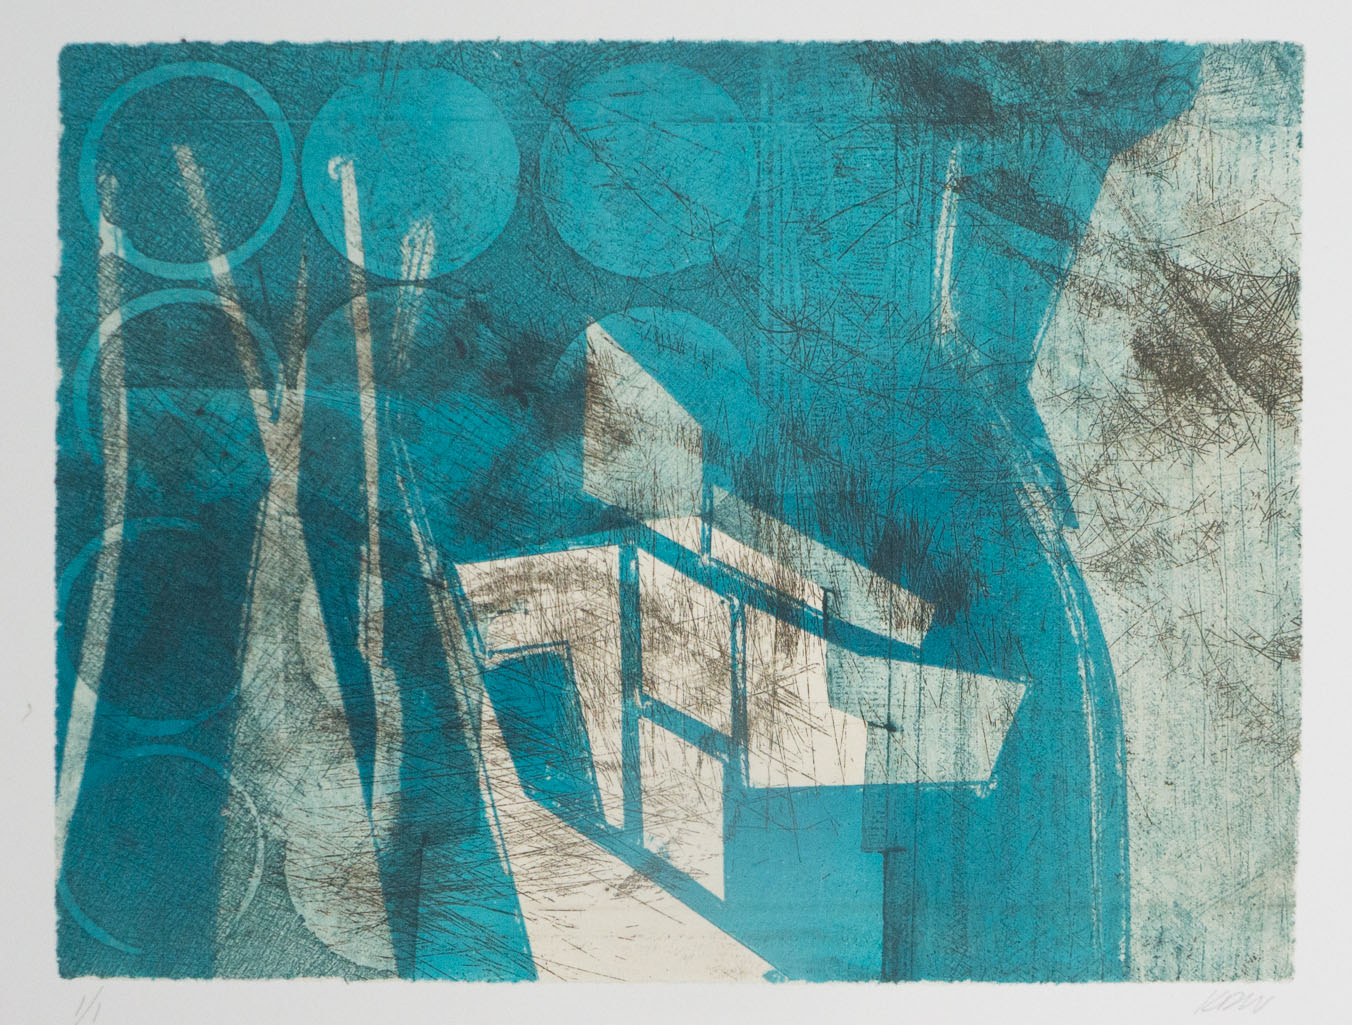 overlook_etching_kate_watkins.jpg